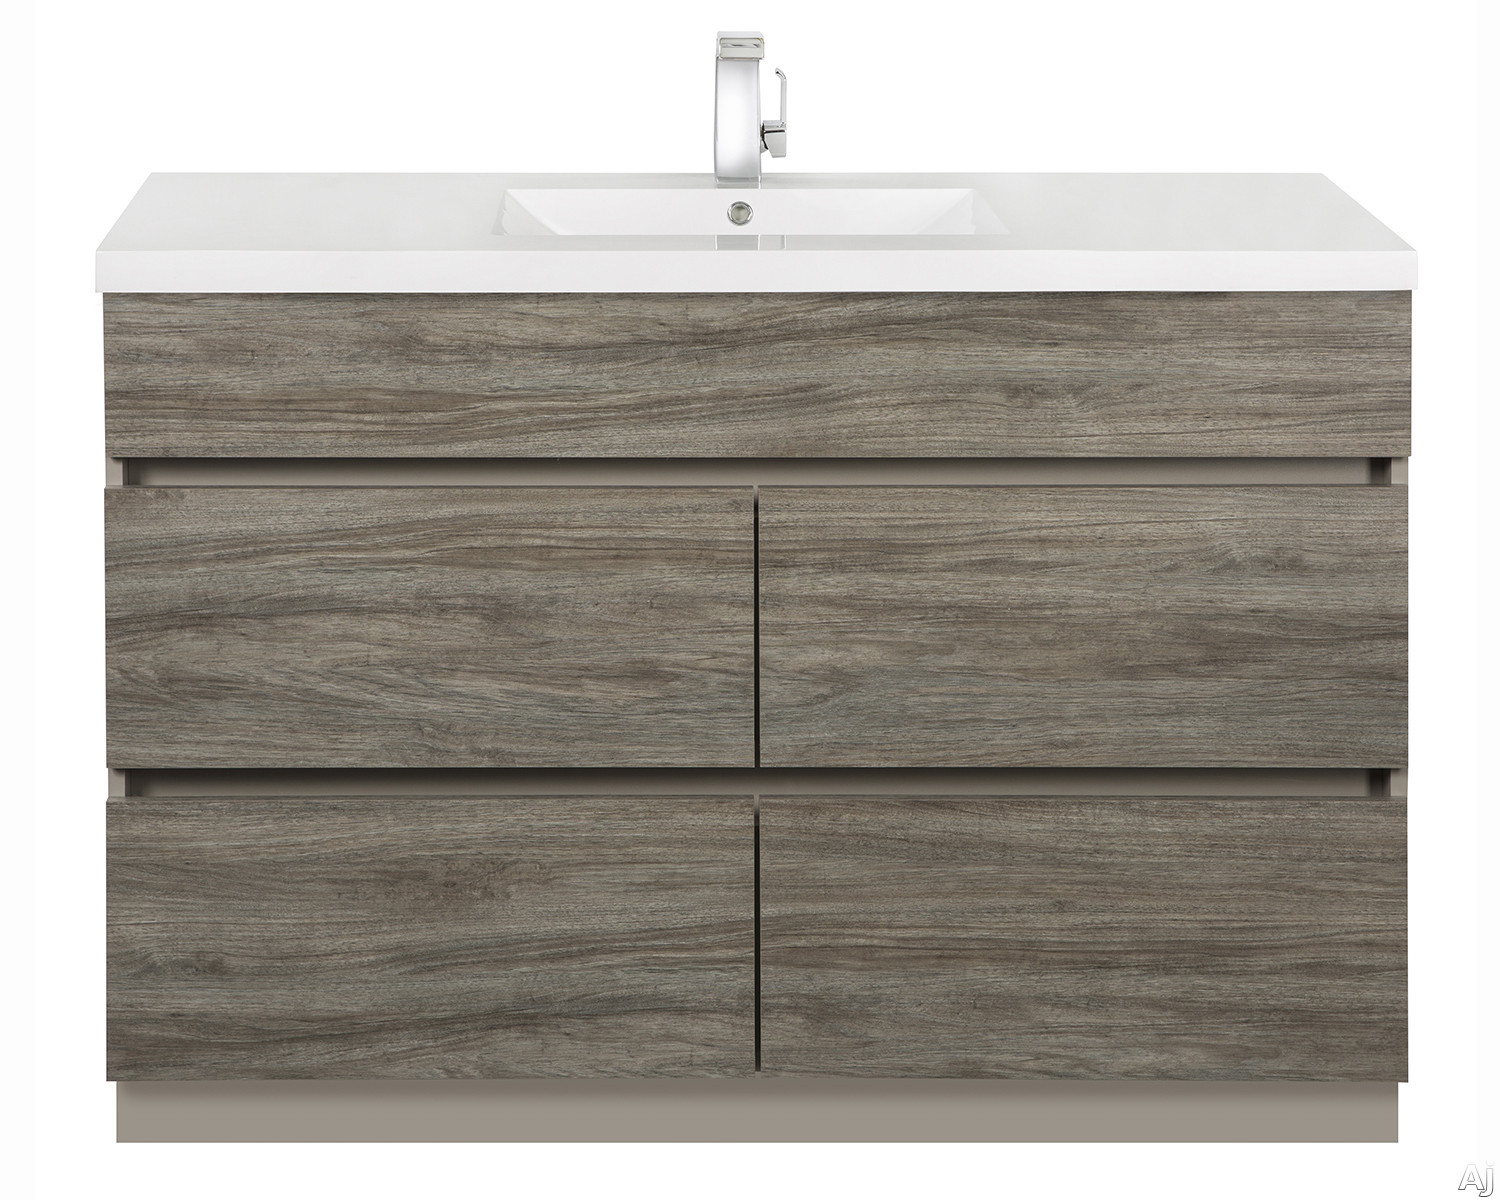 Picture of Cutler Kitchen  Bath Boardwalk BWSW48SB 48 Inch Single Bowl Vanity with Acrylic Top with Overflow 4 Soft Close Drawers Comfort Height and European Hardware Southwester